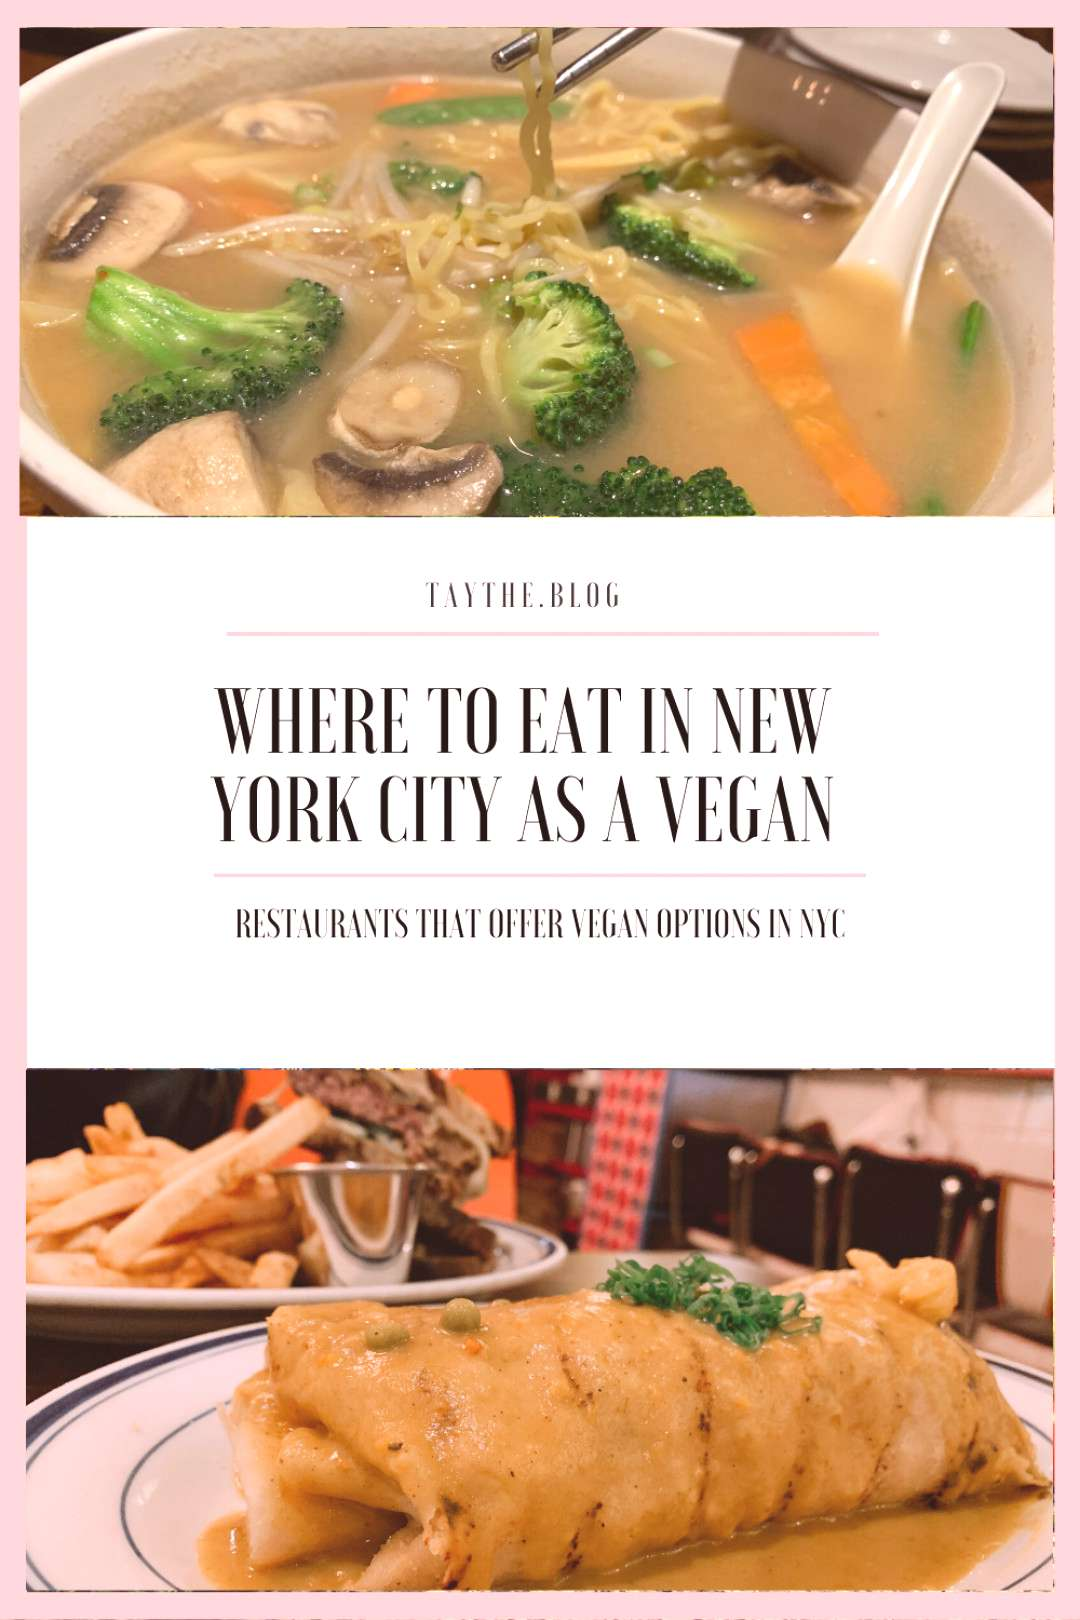 WHERE TO EAT IN NEW YORK CITY AS A VEGAN While in New York City here are some vegan restaurants th